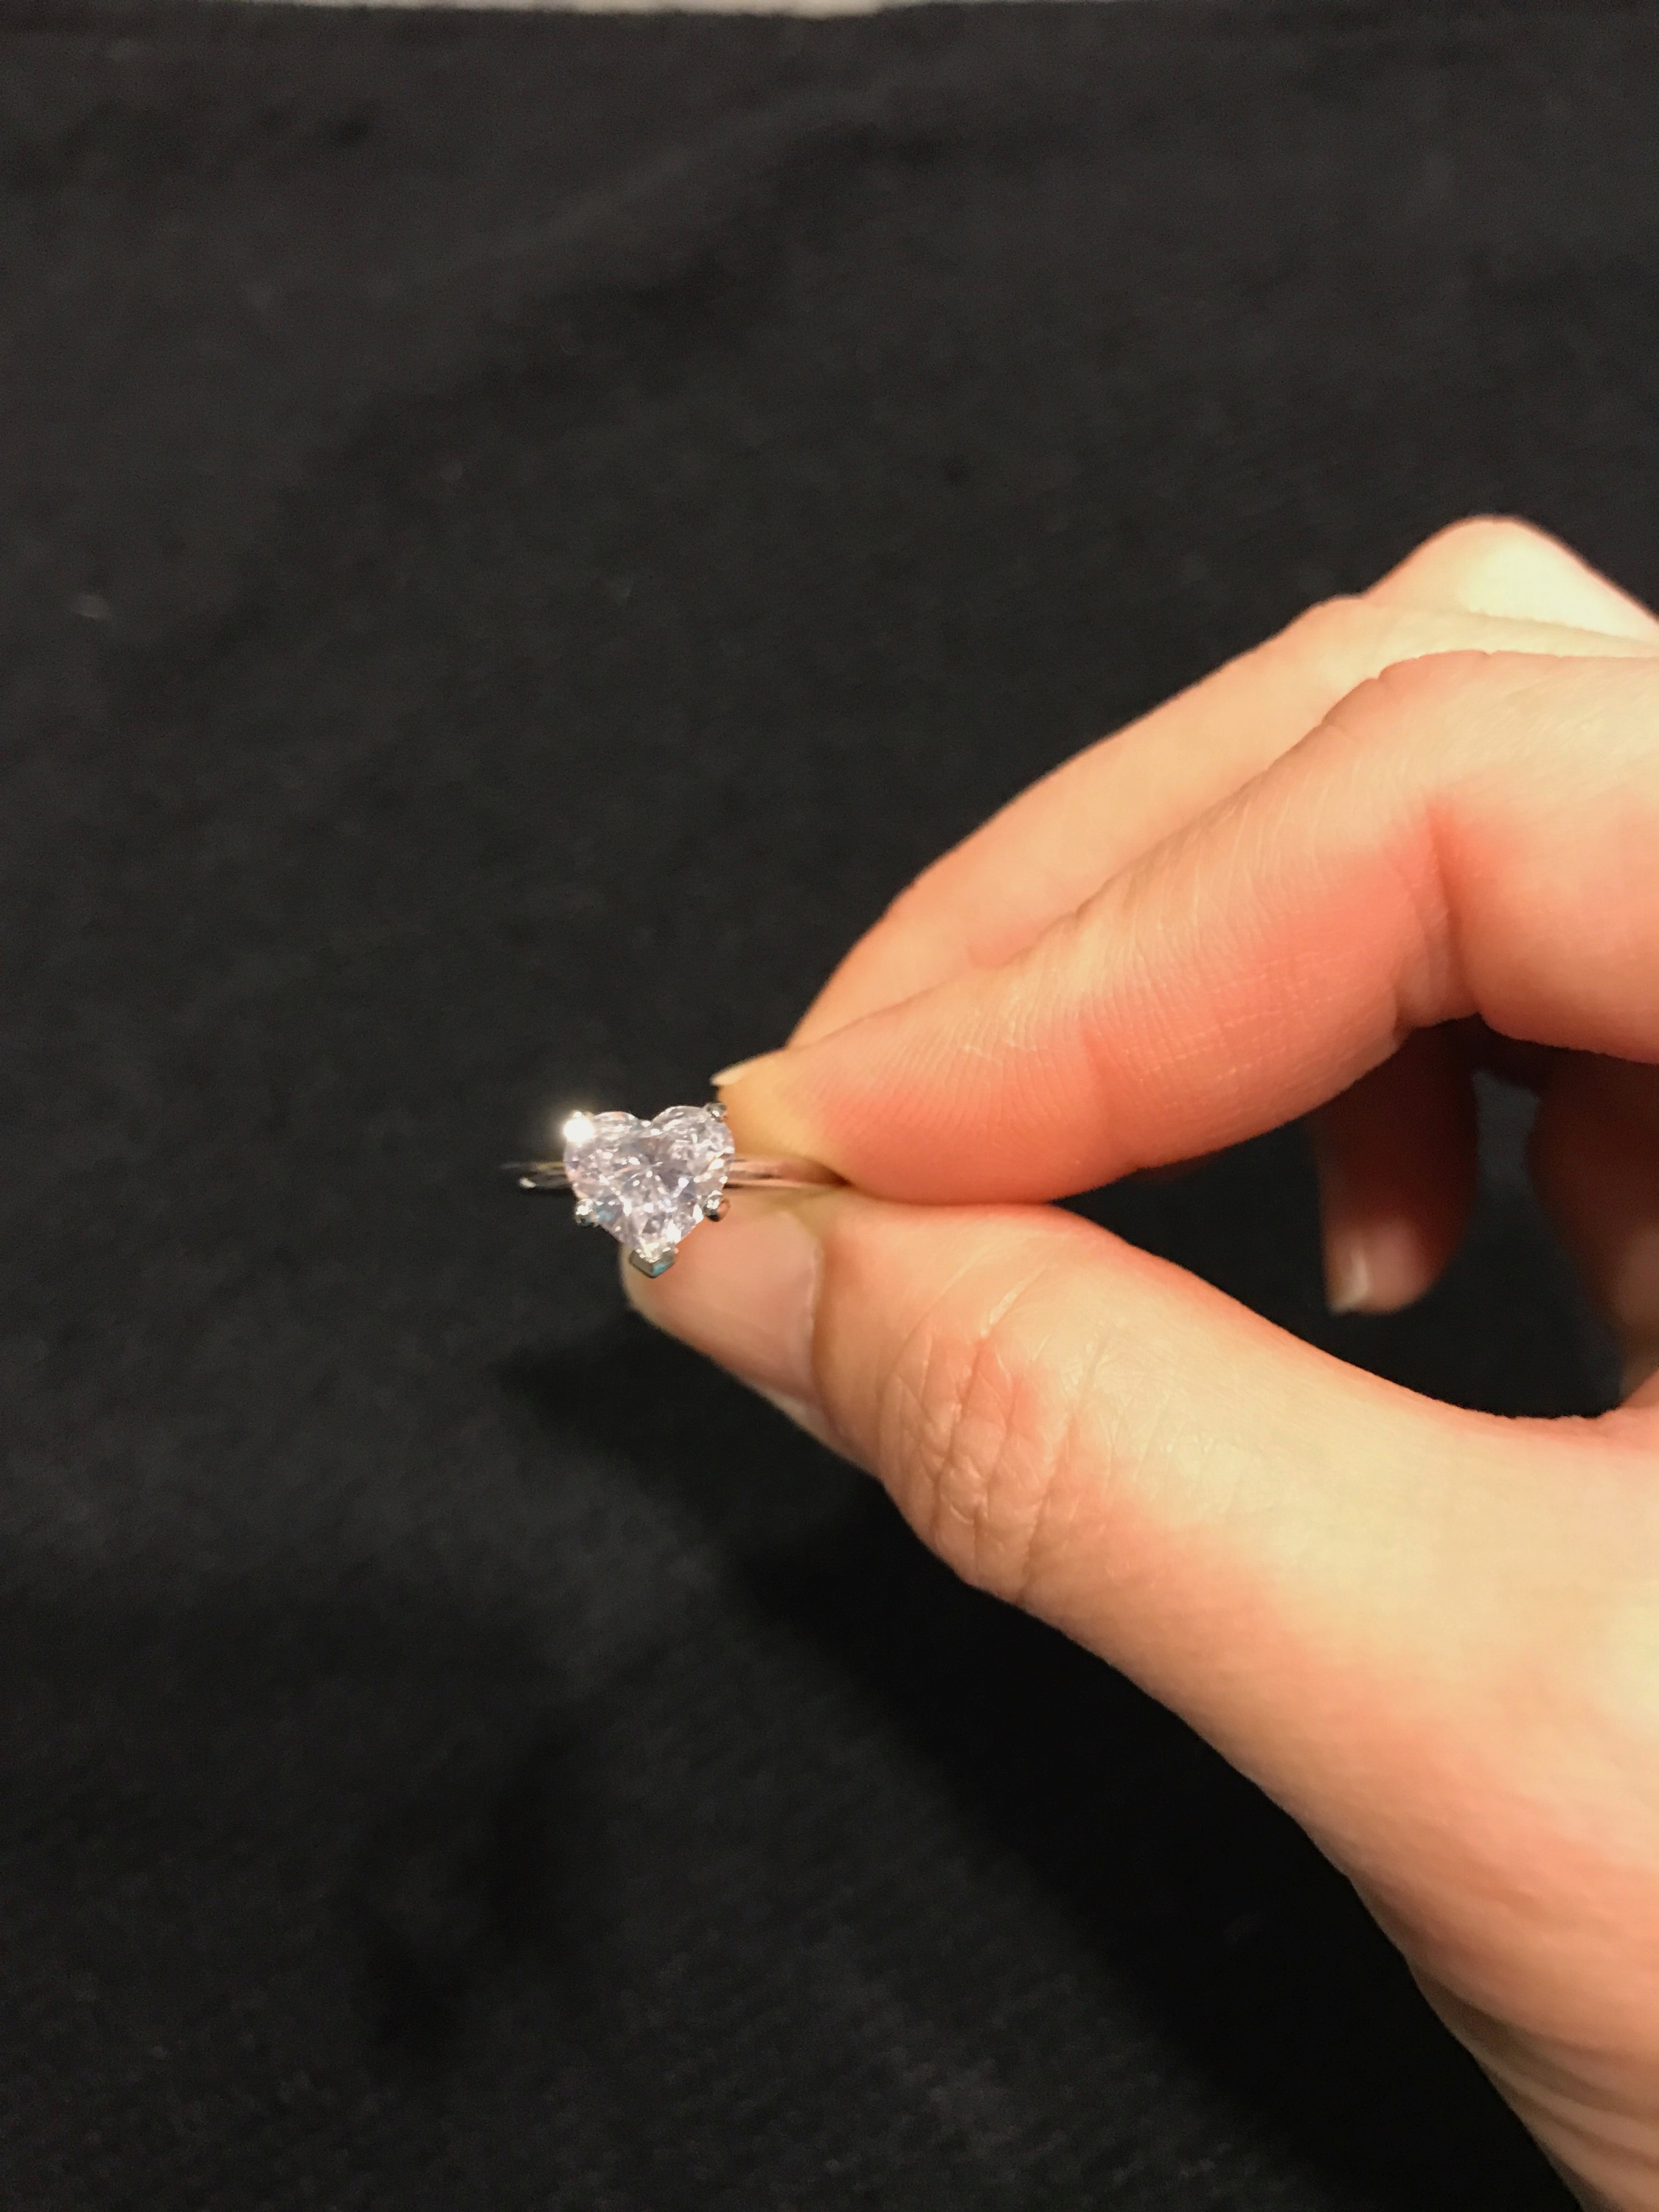 b048240564d 1.72 ct Heart Shaped Diamond in Platinum Solitaire Setting